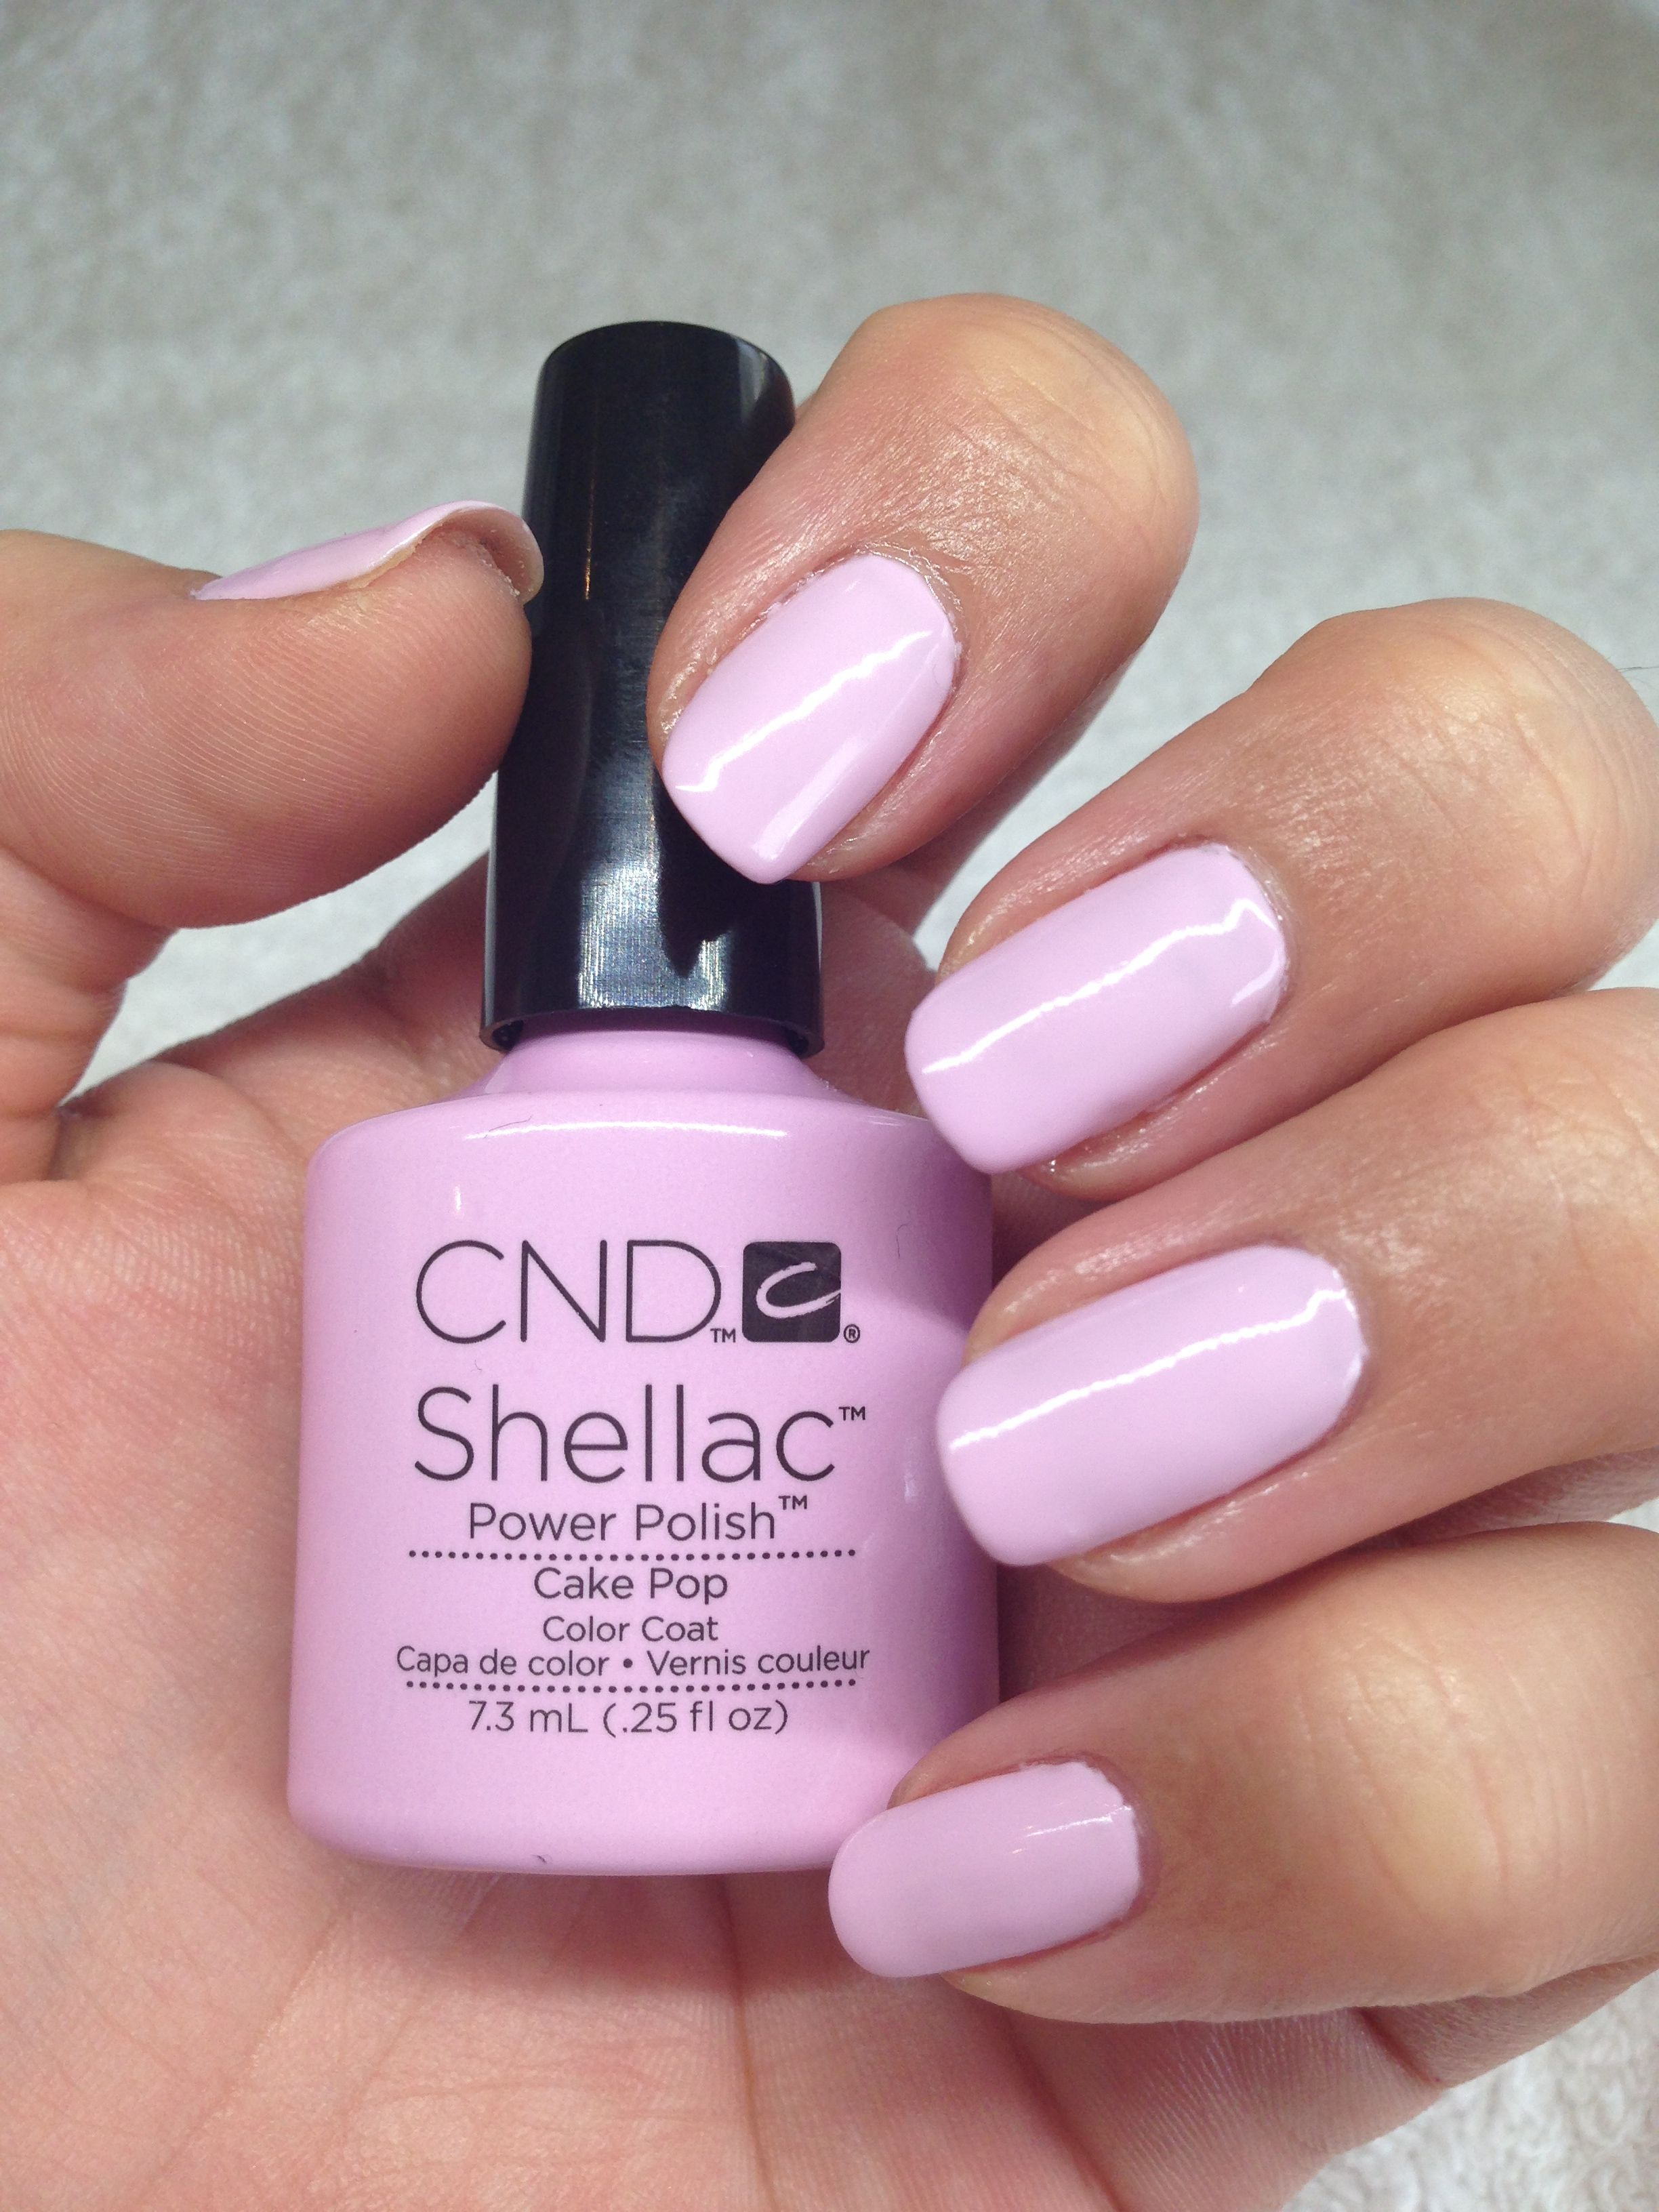 Pretty Nails Shellac Manicure Claramay Beauty One Of Our Faves Cake Pop Colour